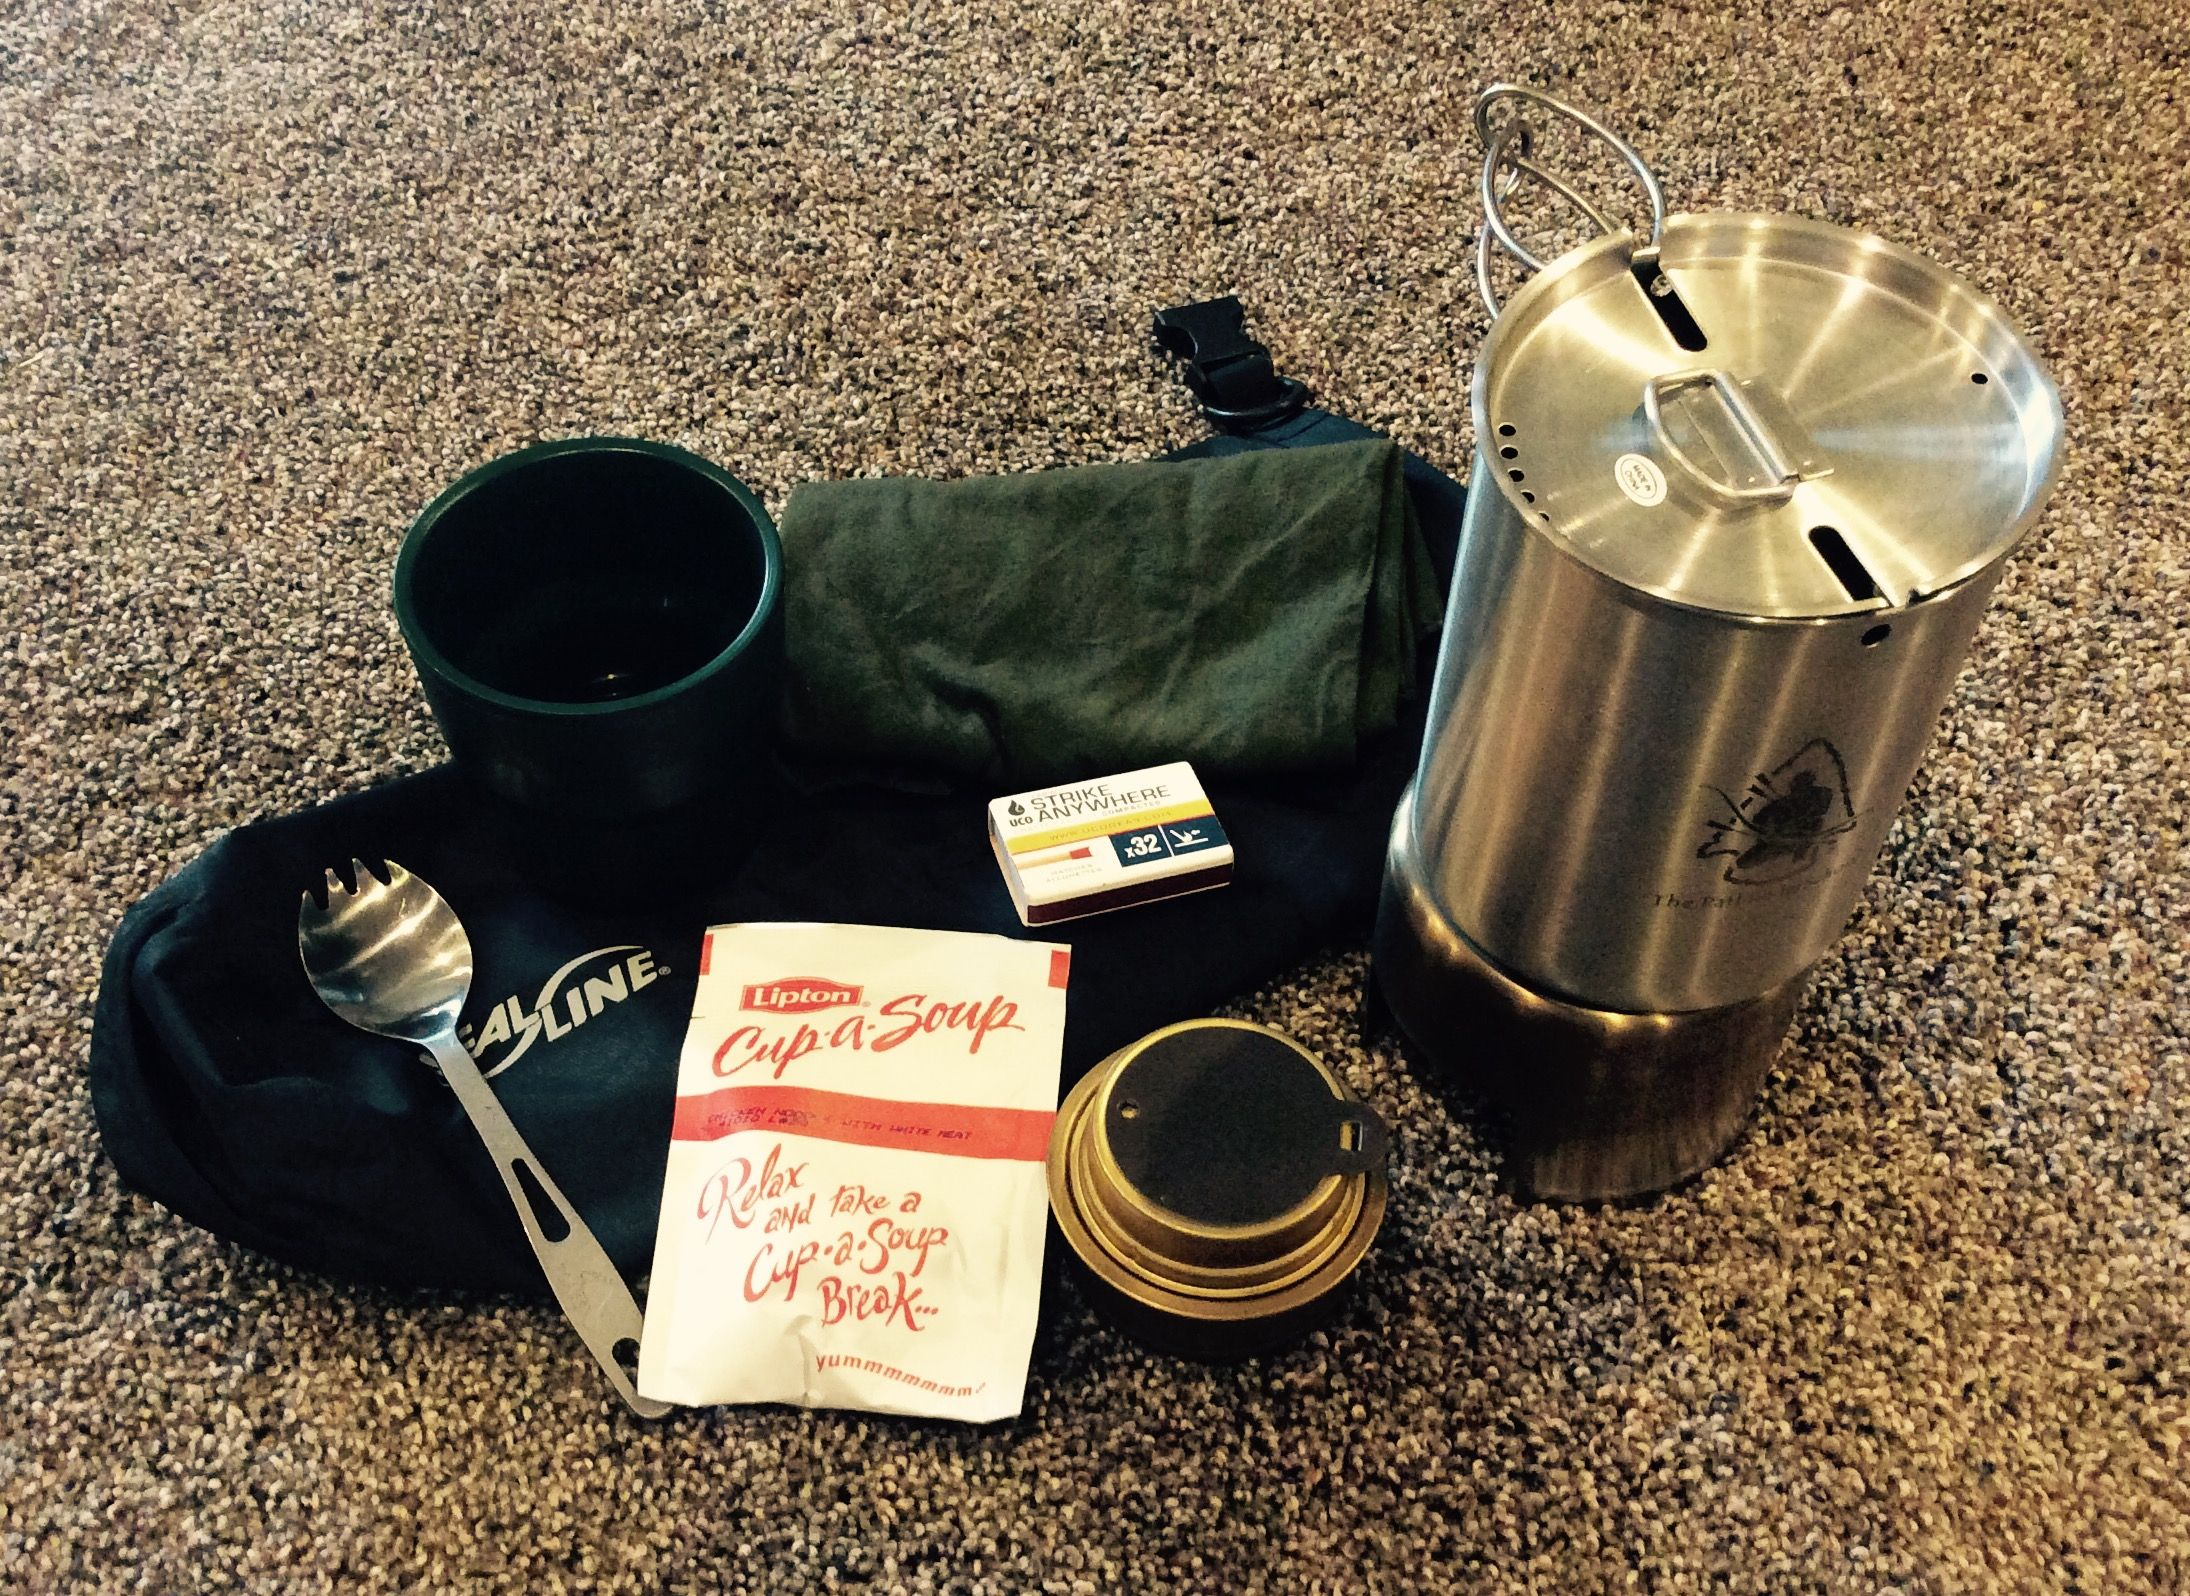 compact dry bag cook kit pathfinder gen 2 cup with lid bottle